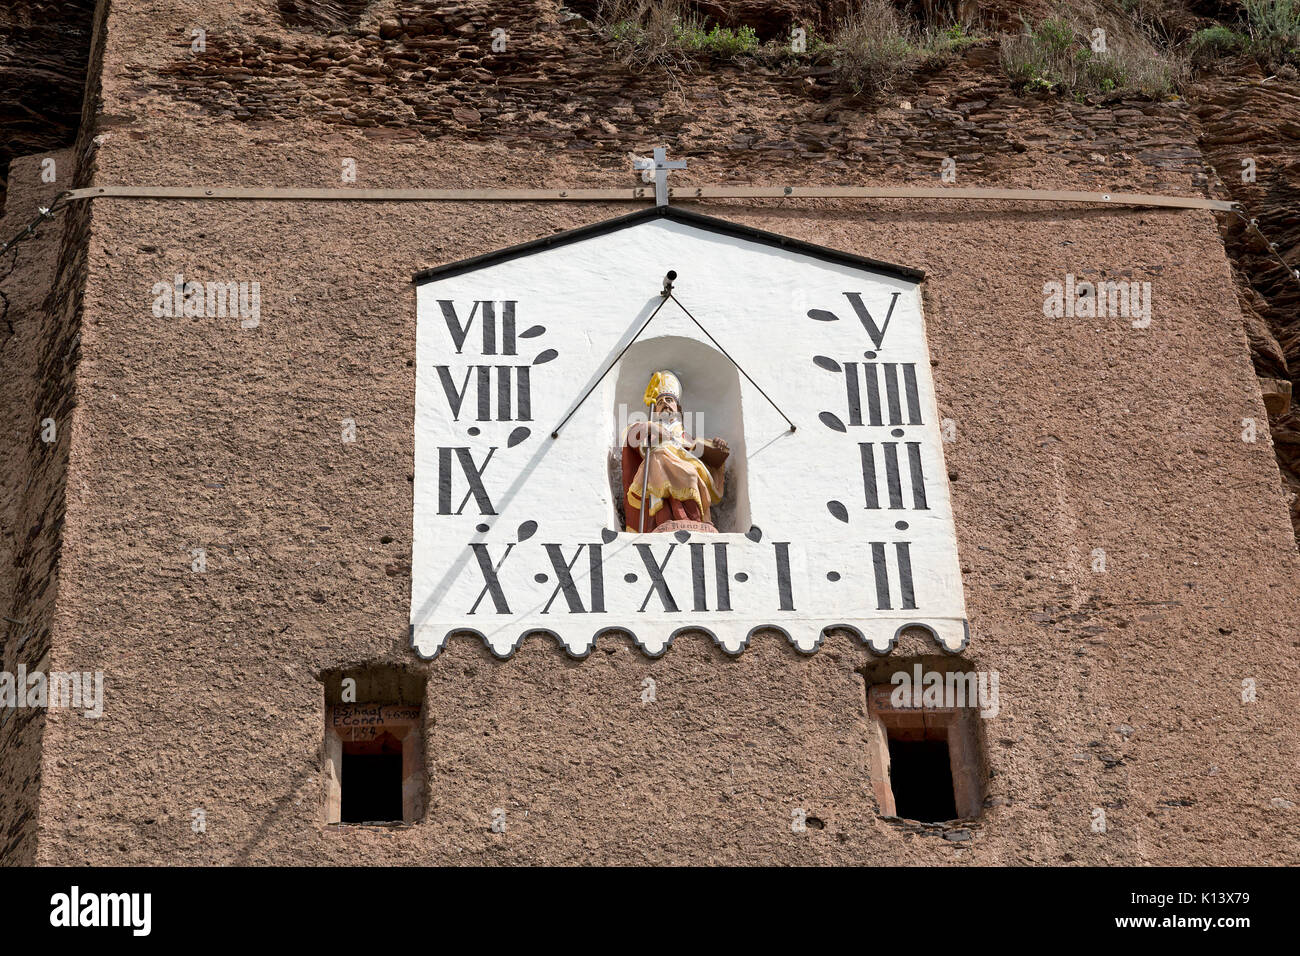 sun dial in the cliffs near Uerzig, Moselle, Rhineland-Palatinate, Germany - Stock Image